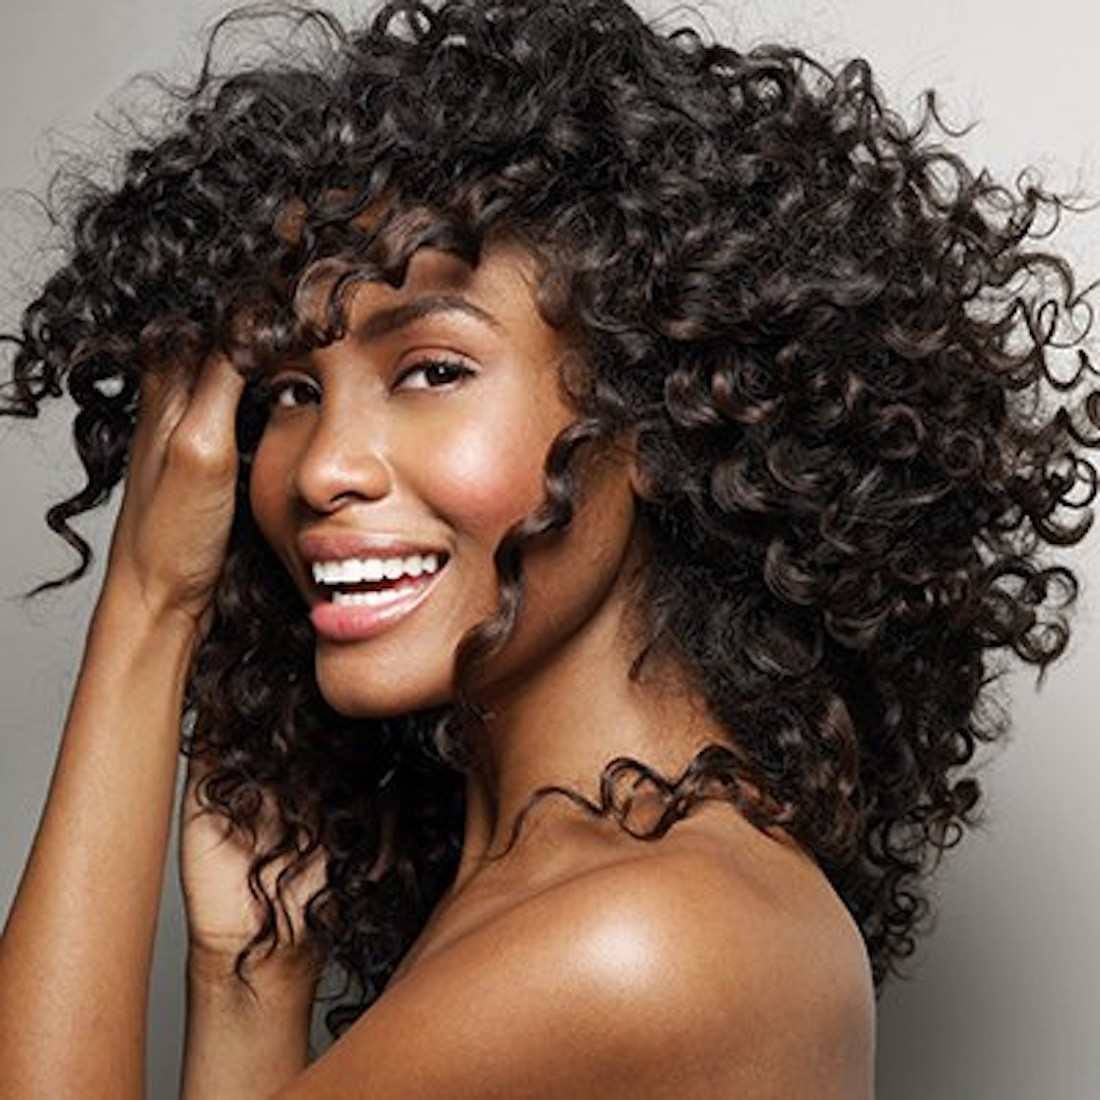 10.Its great to condition your hair and make it curly and shinier